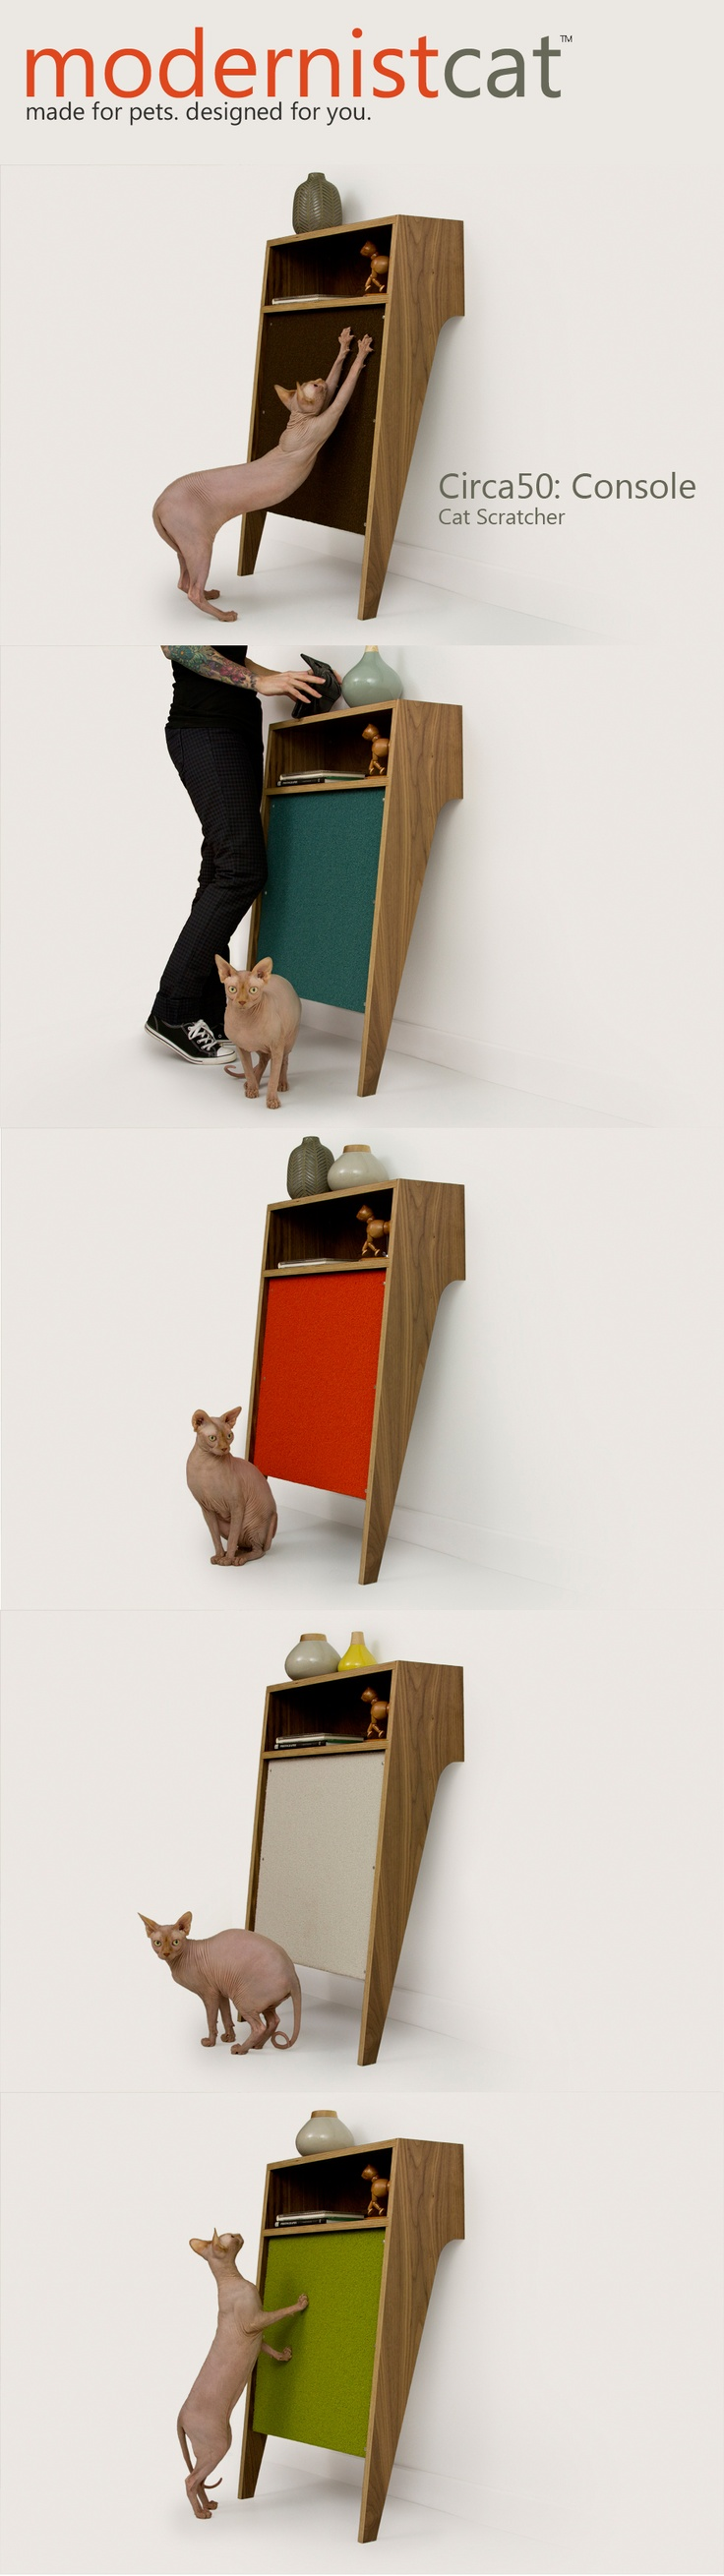 Modernist Cat | Circa50: Console - Cat Scratcher - Available from ...